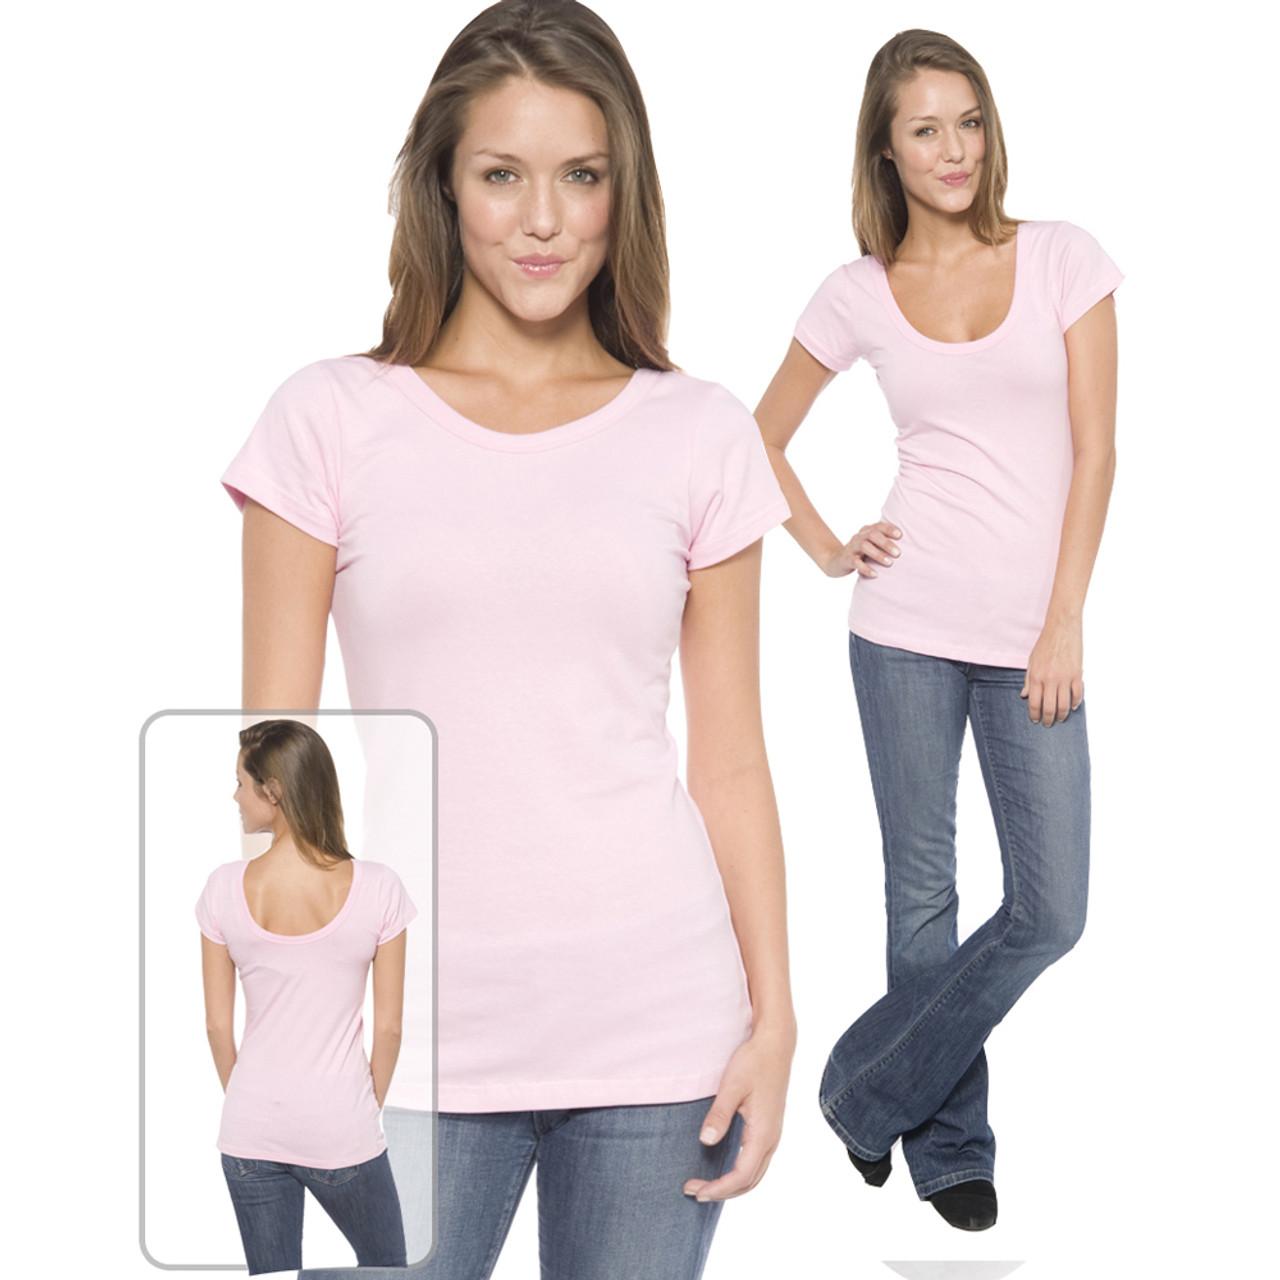 Wear this shirt with a scoop in the front or back